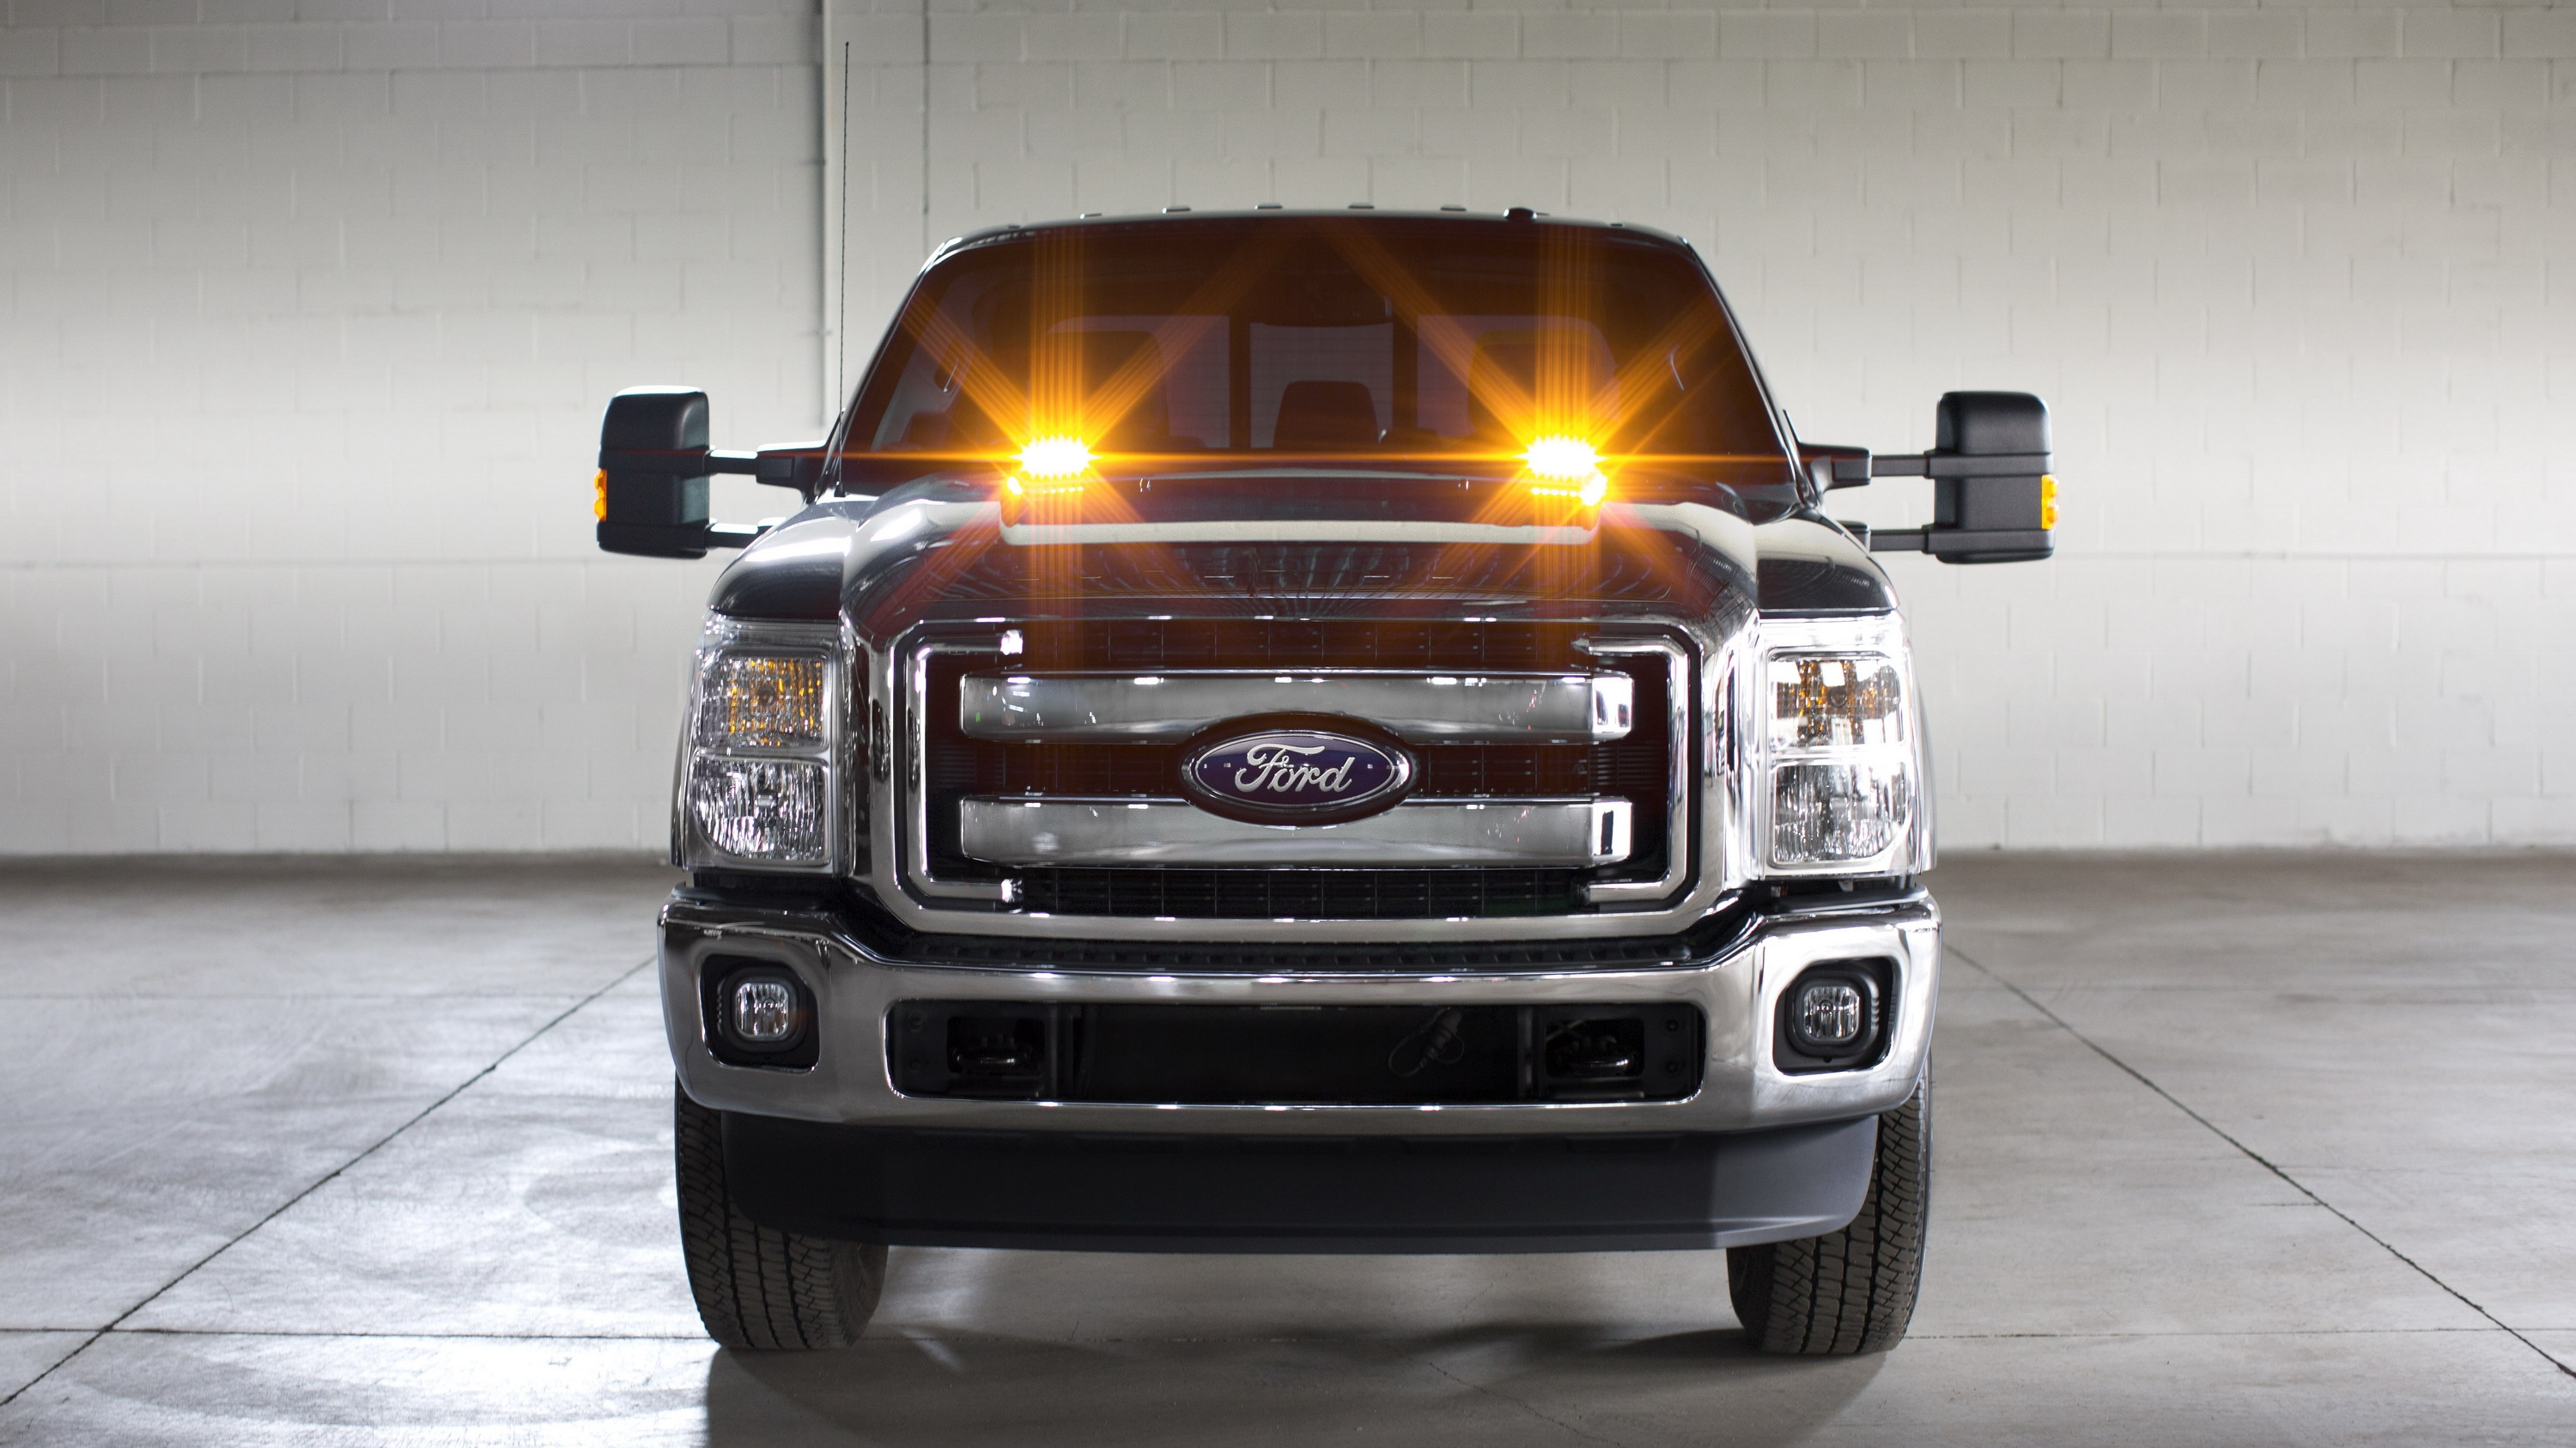 Next Gen Ford Super Duty Pushed To 2017 As 2016 Model Gets